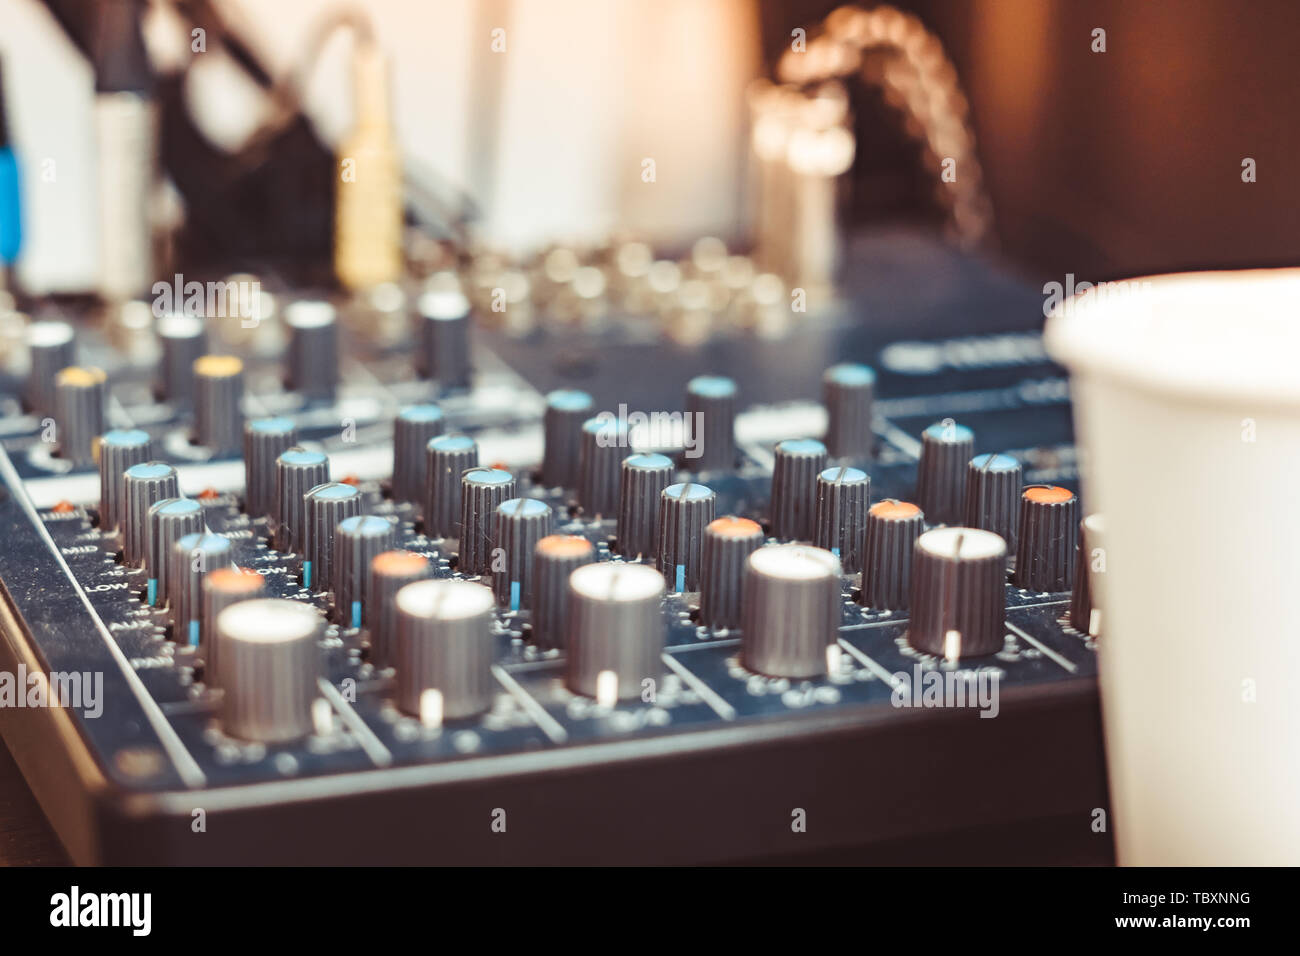 Mixers on the slider at the event - Stock Image